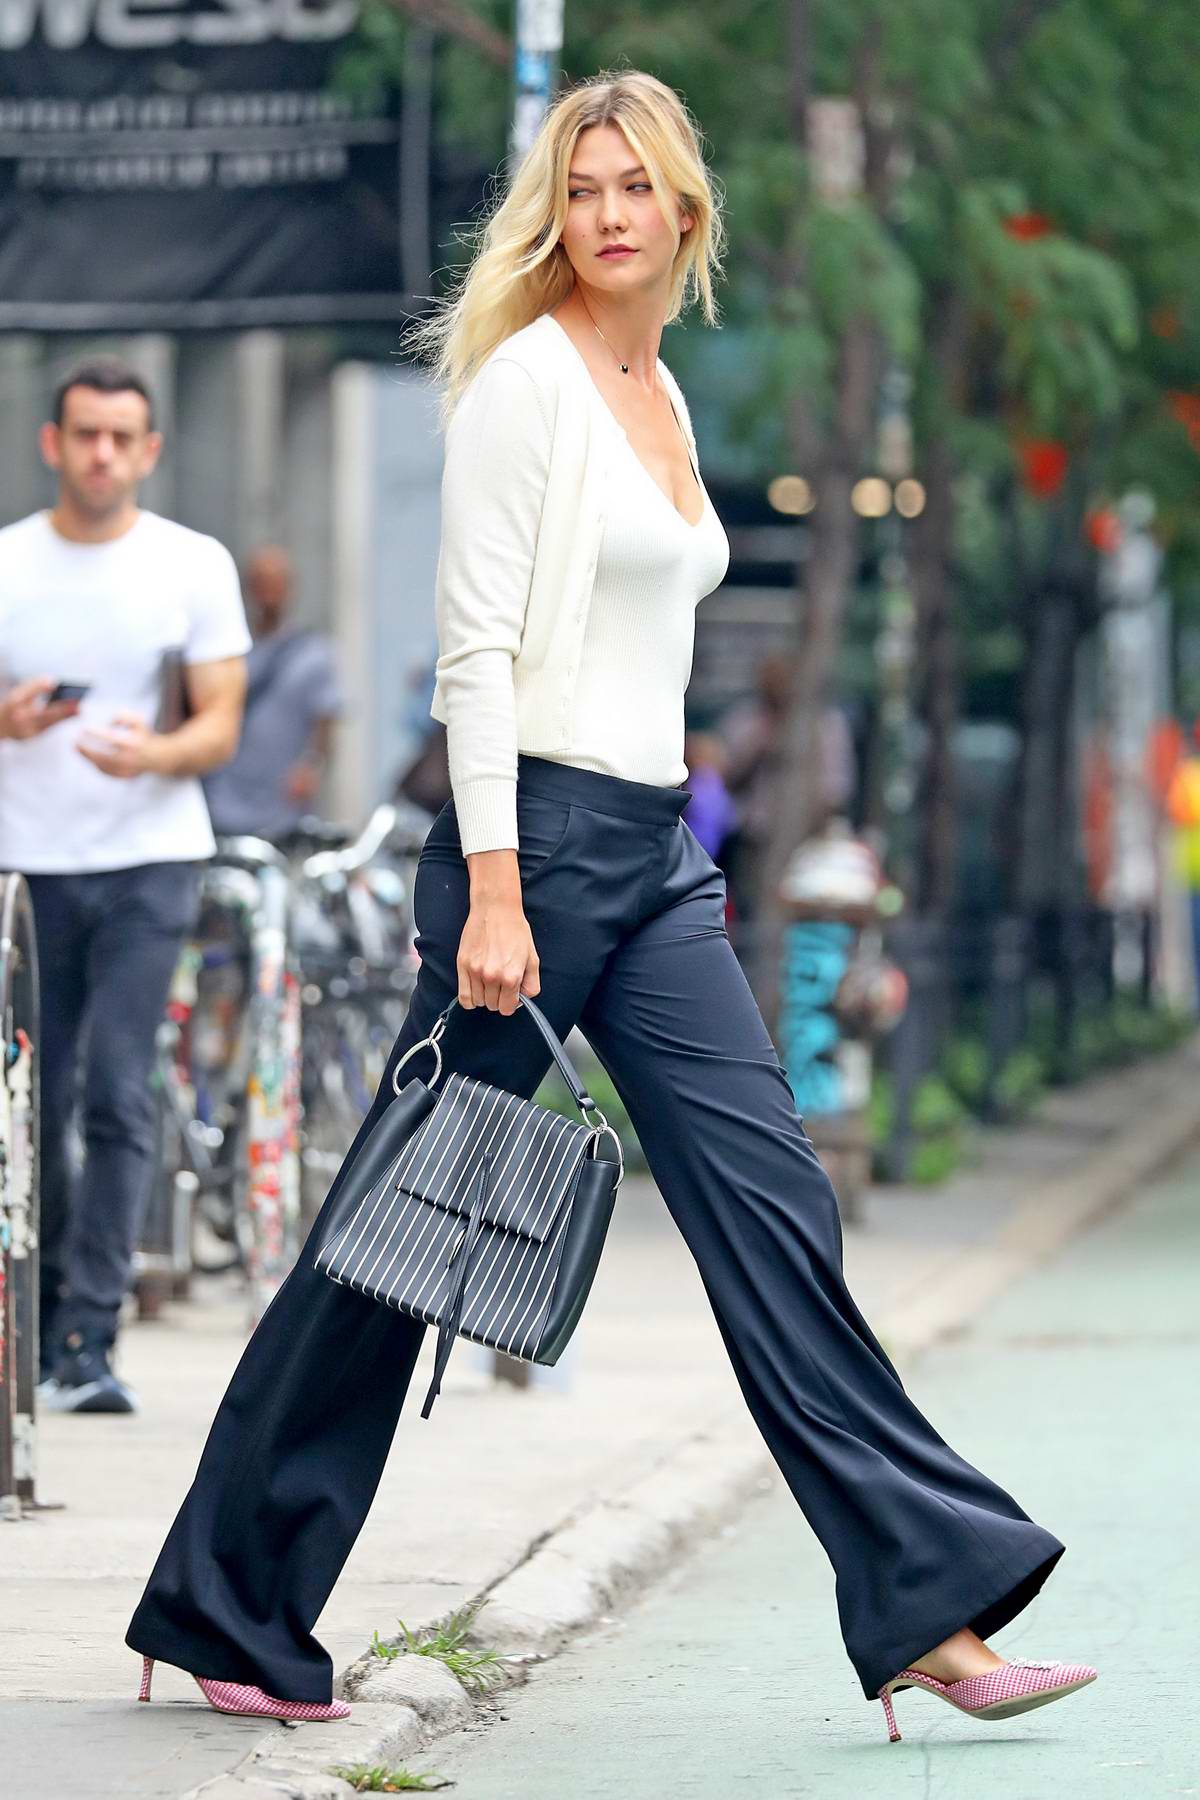 Karlie Lloss steps out wearing a white plunging neckline top with navy trousers in New York City